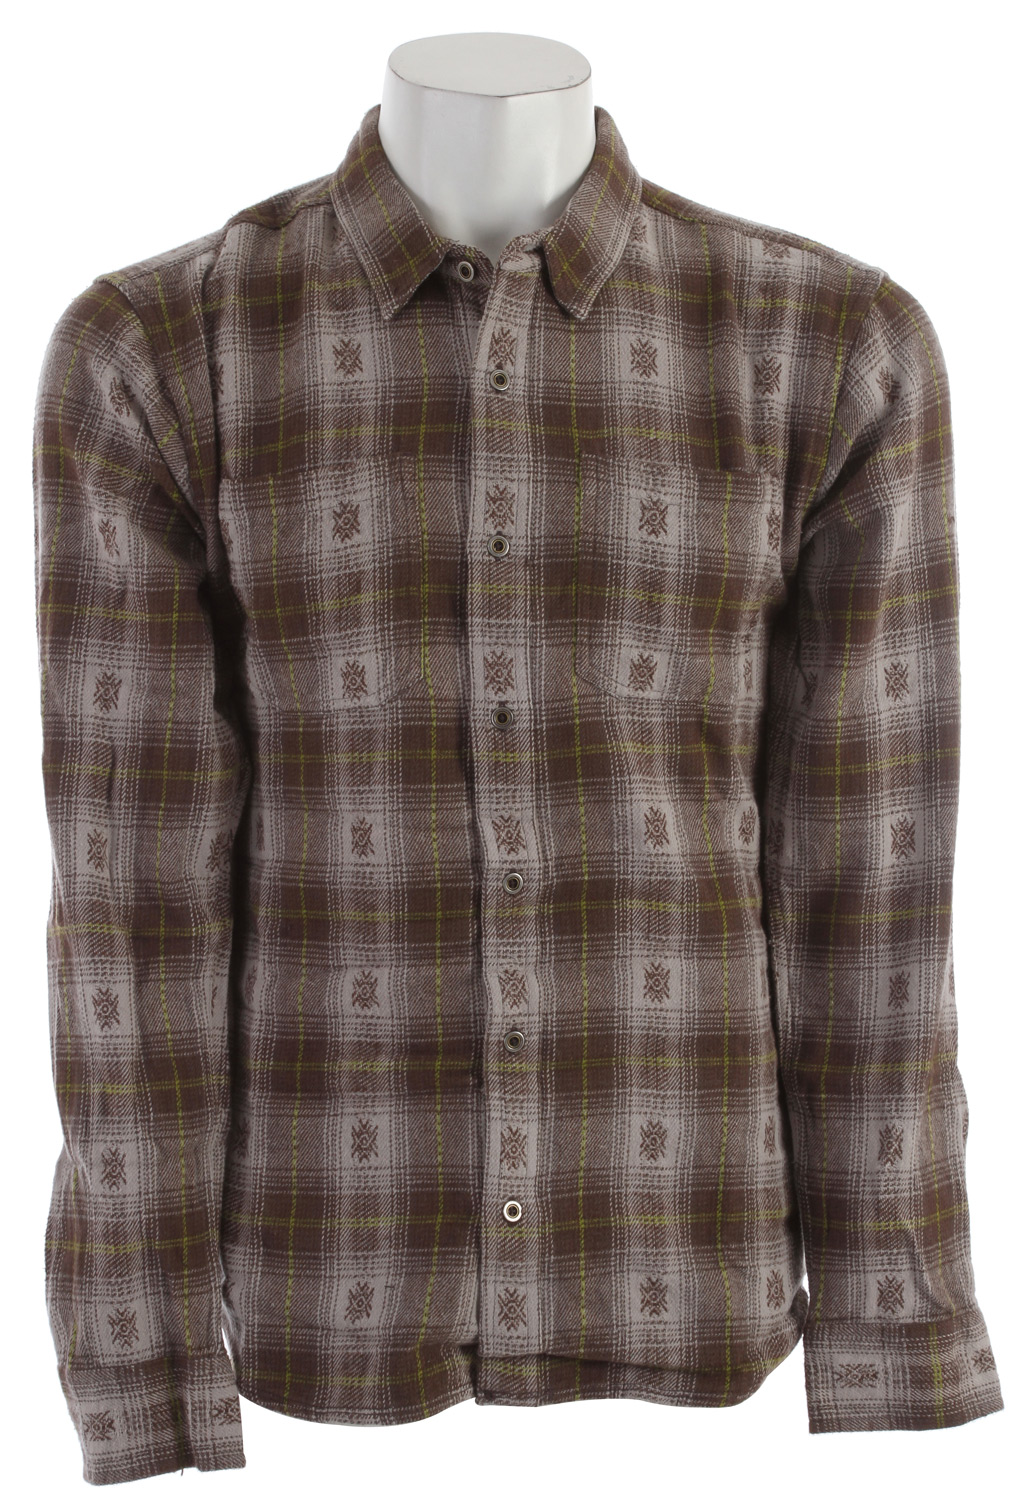 Key Features of the Prana Hickory Flannel: 100% Cotton 6.8oz Yarn dyed flannel with geometric motif Front patch pocket Relaxed fit - $51.95